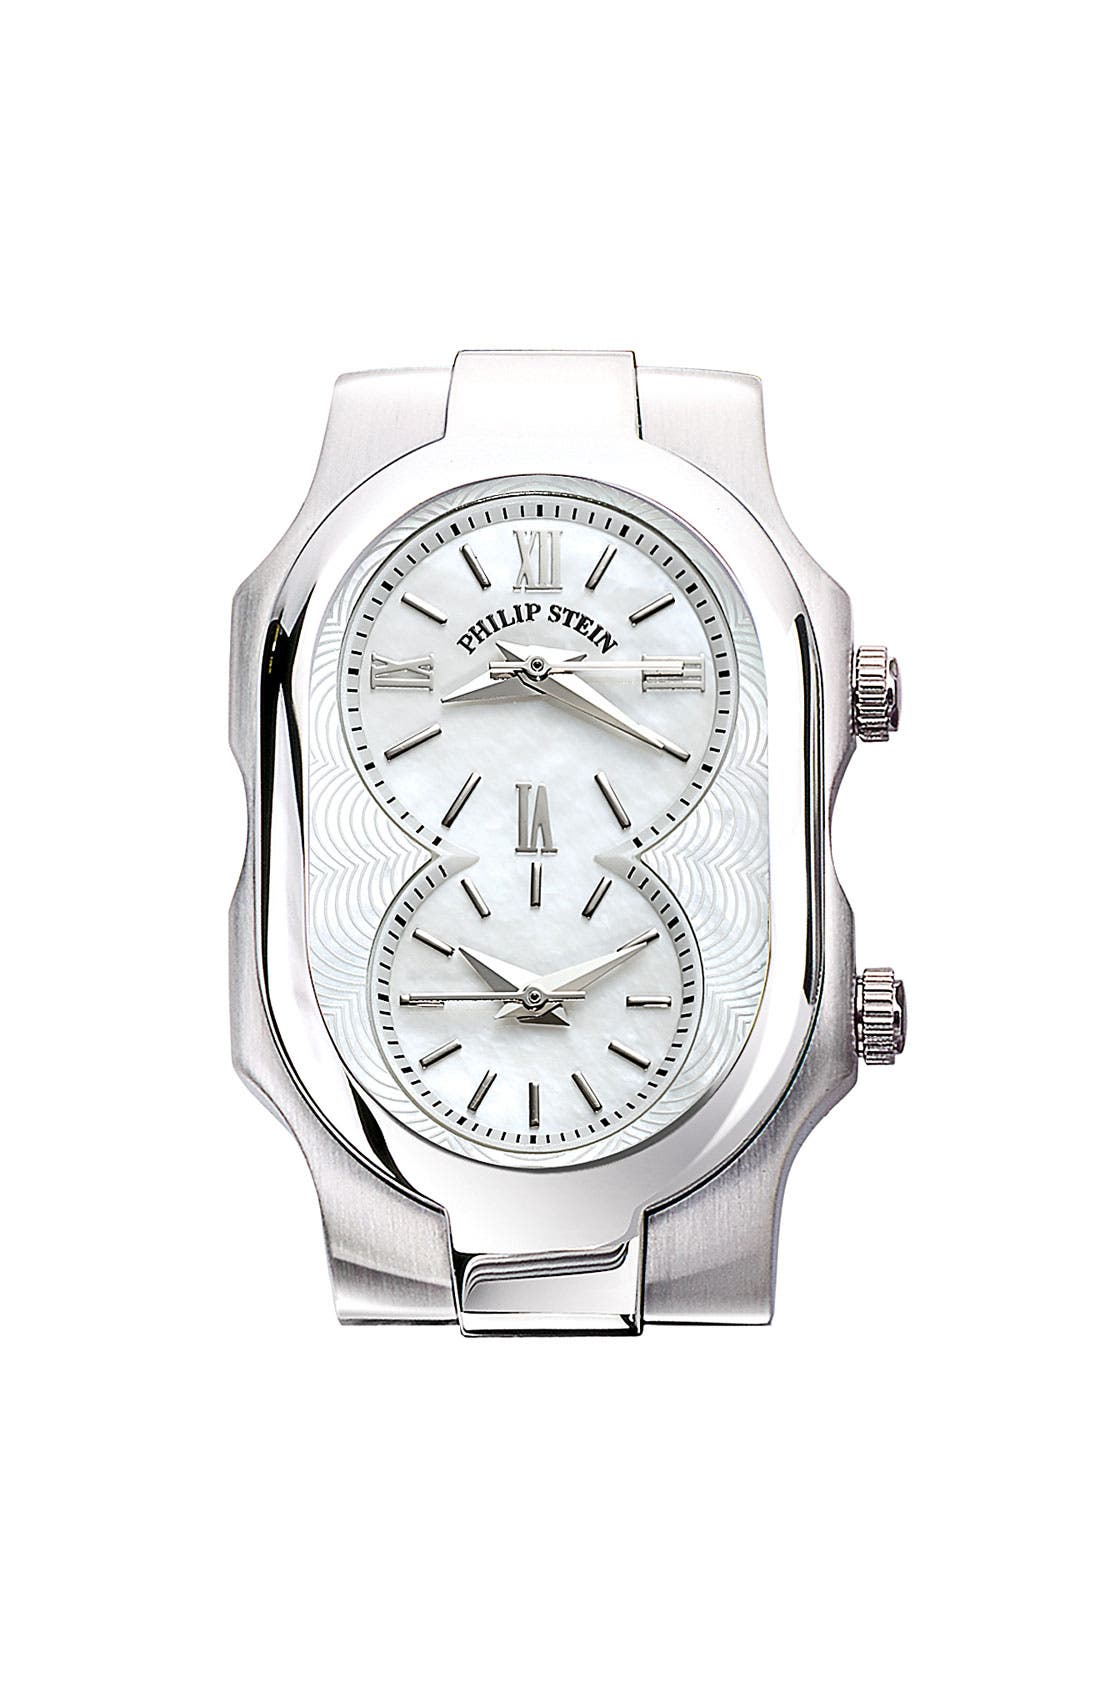 Alternate Image 1 Selected - Philip Stein® 'Signature' Small Watch Case